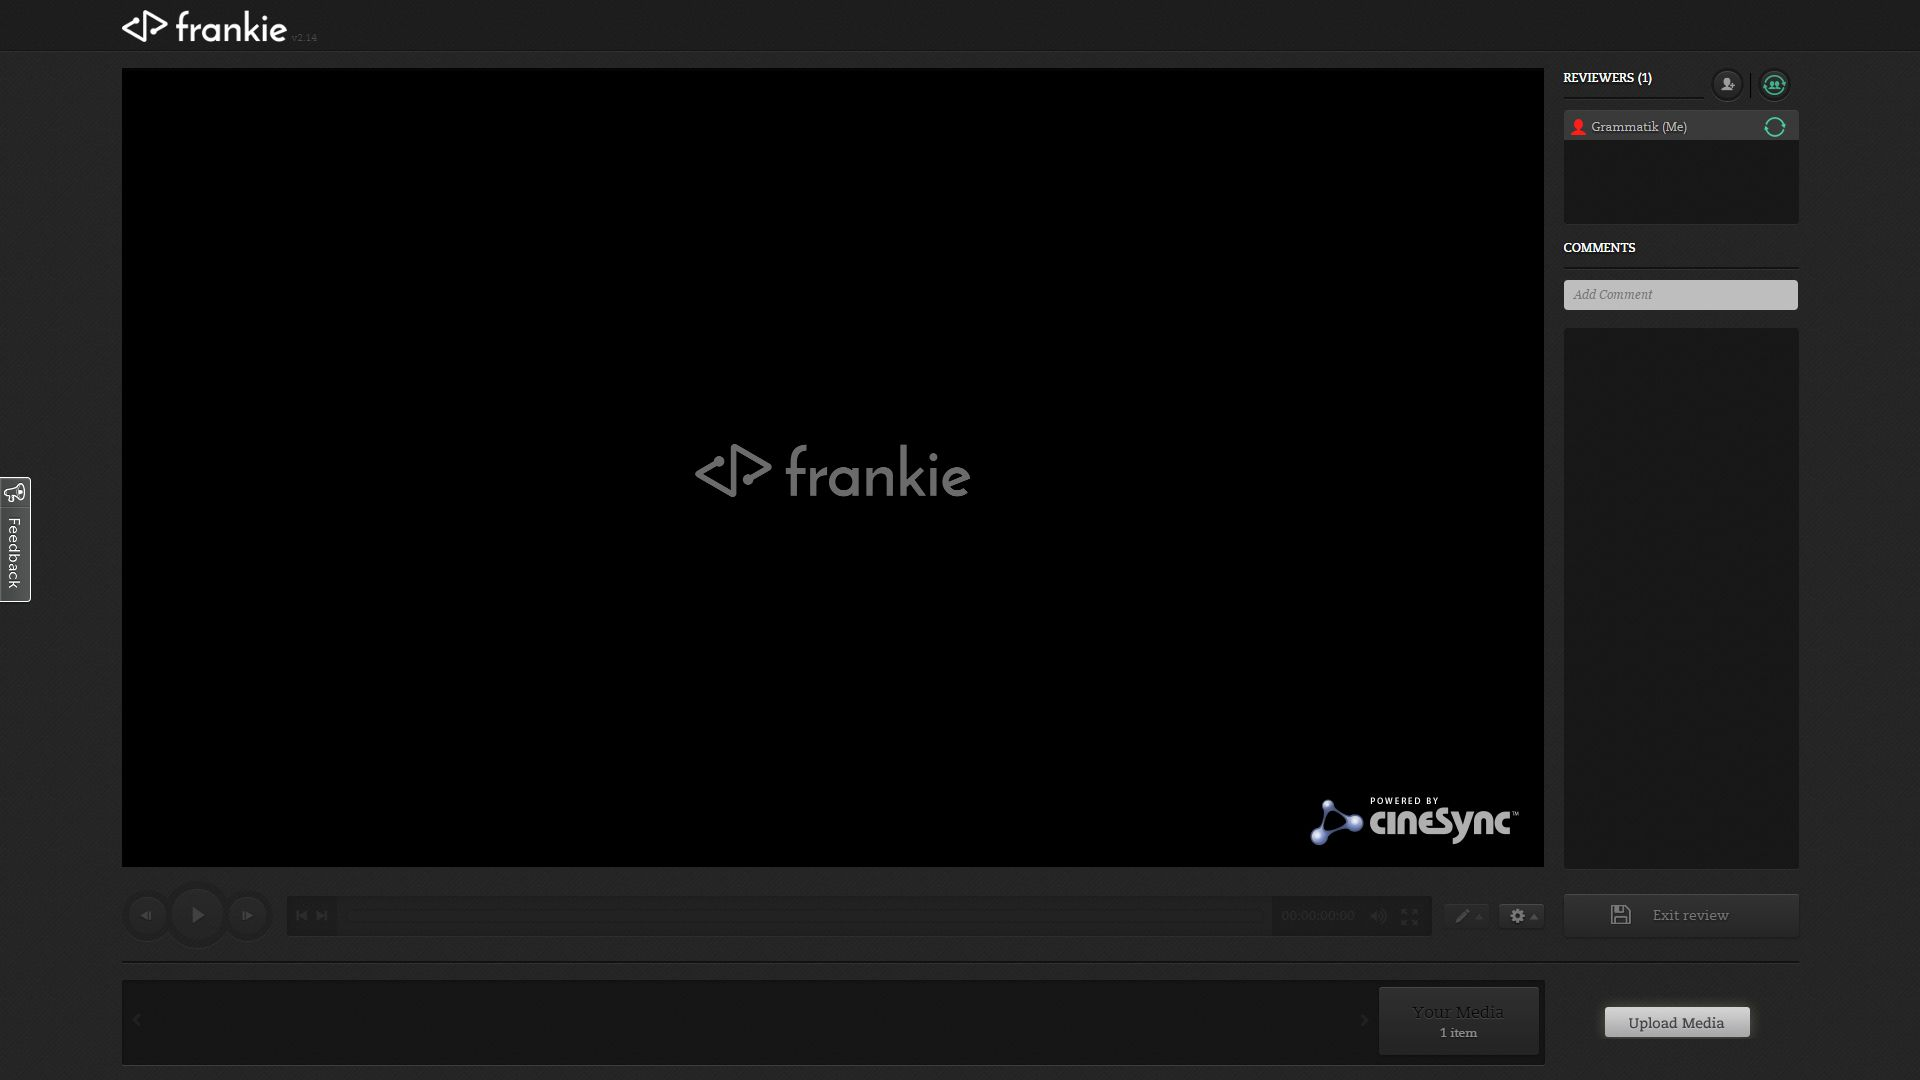 Frankie Makes Content Sharing and Client Review Simple and Easy 1